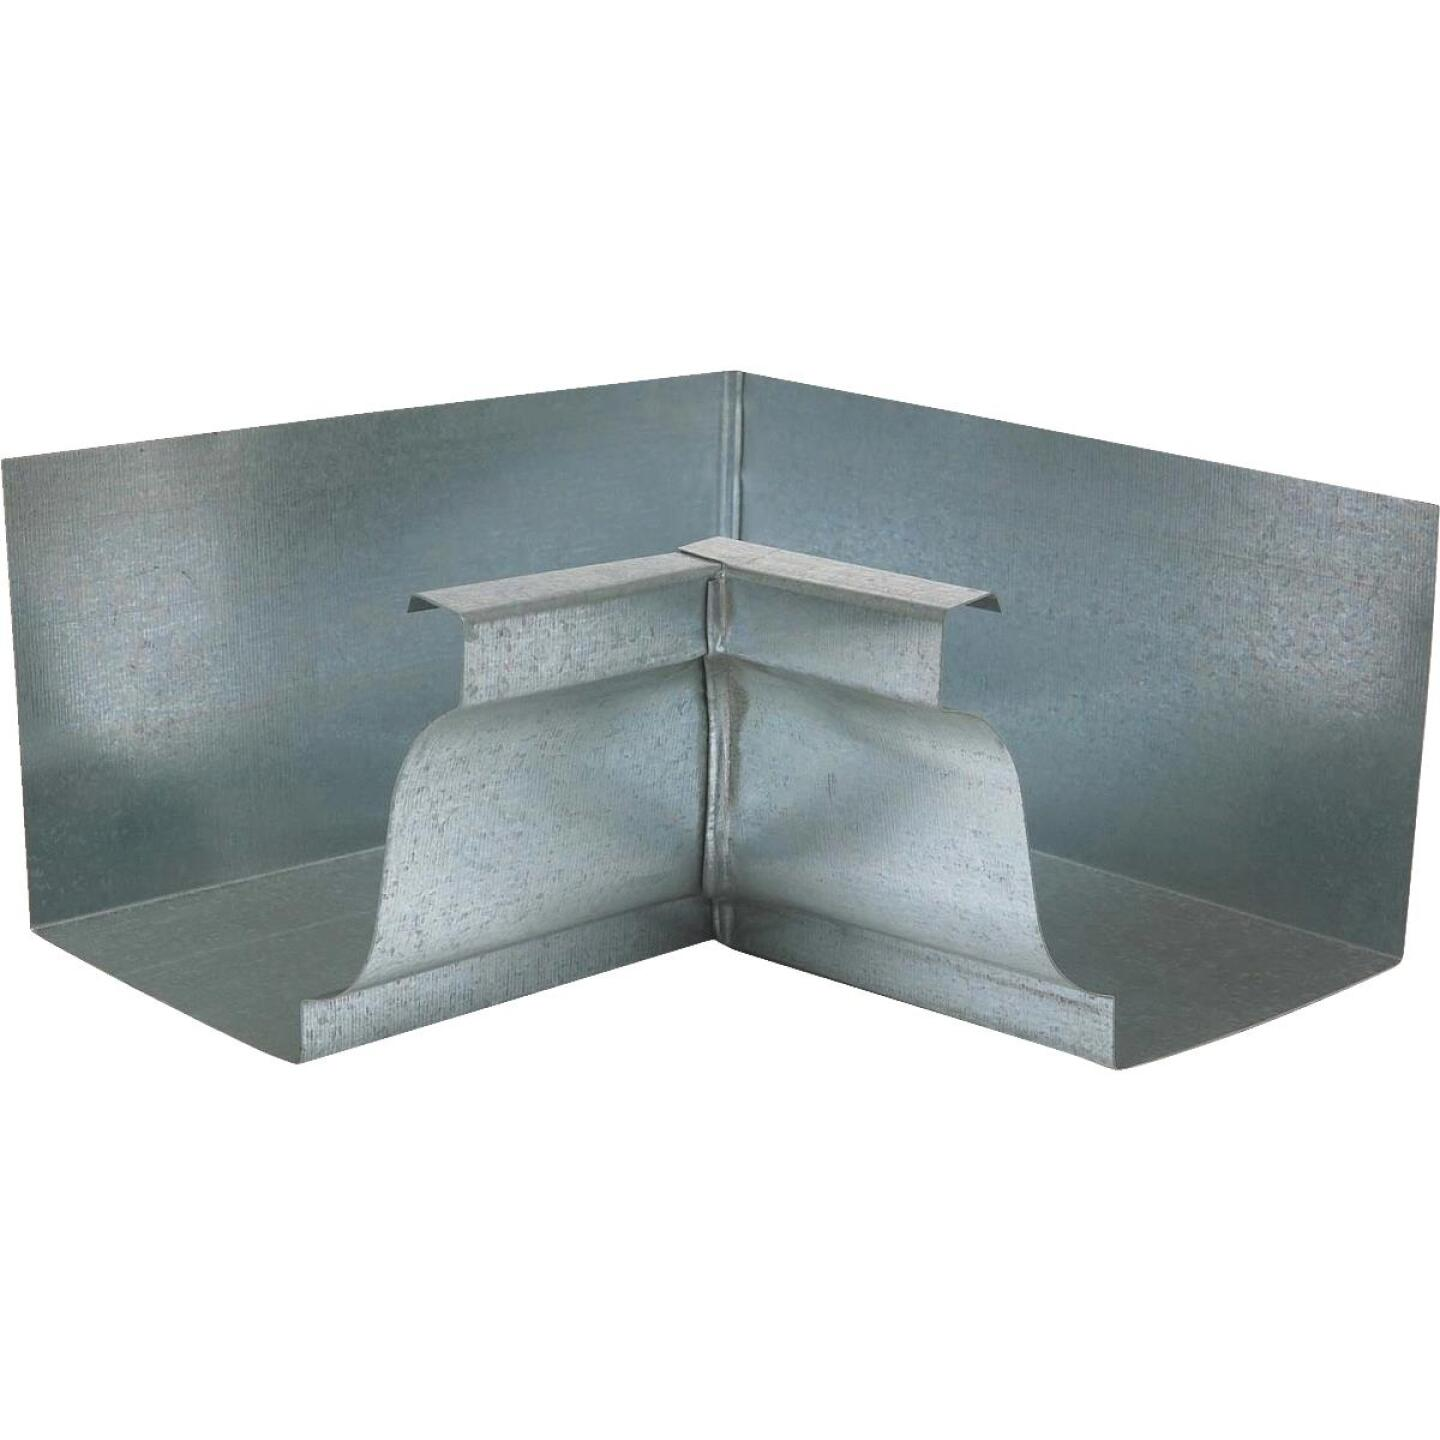 NorWesco 4 In. Galvanized Gutter Inside Corner Image 1